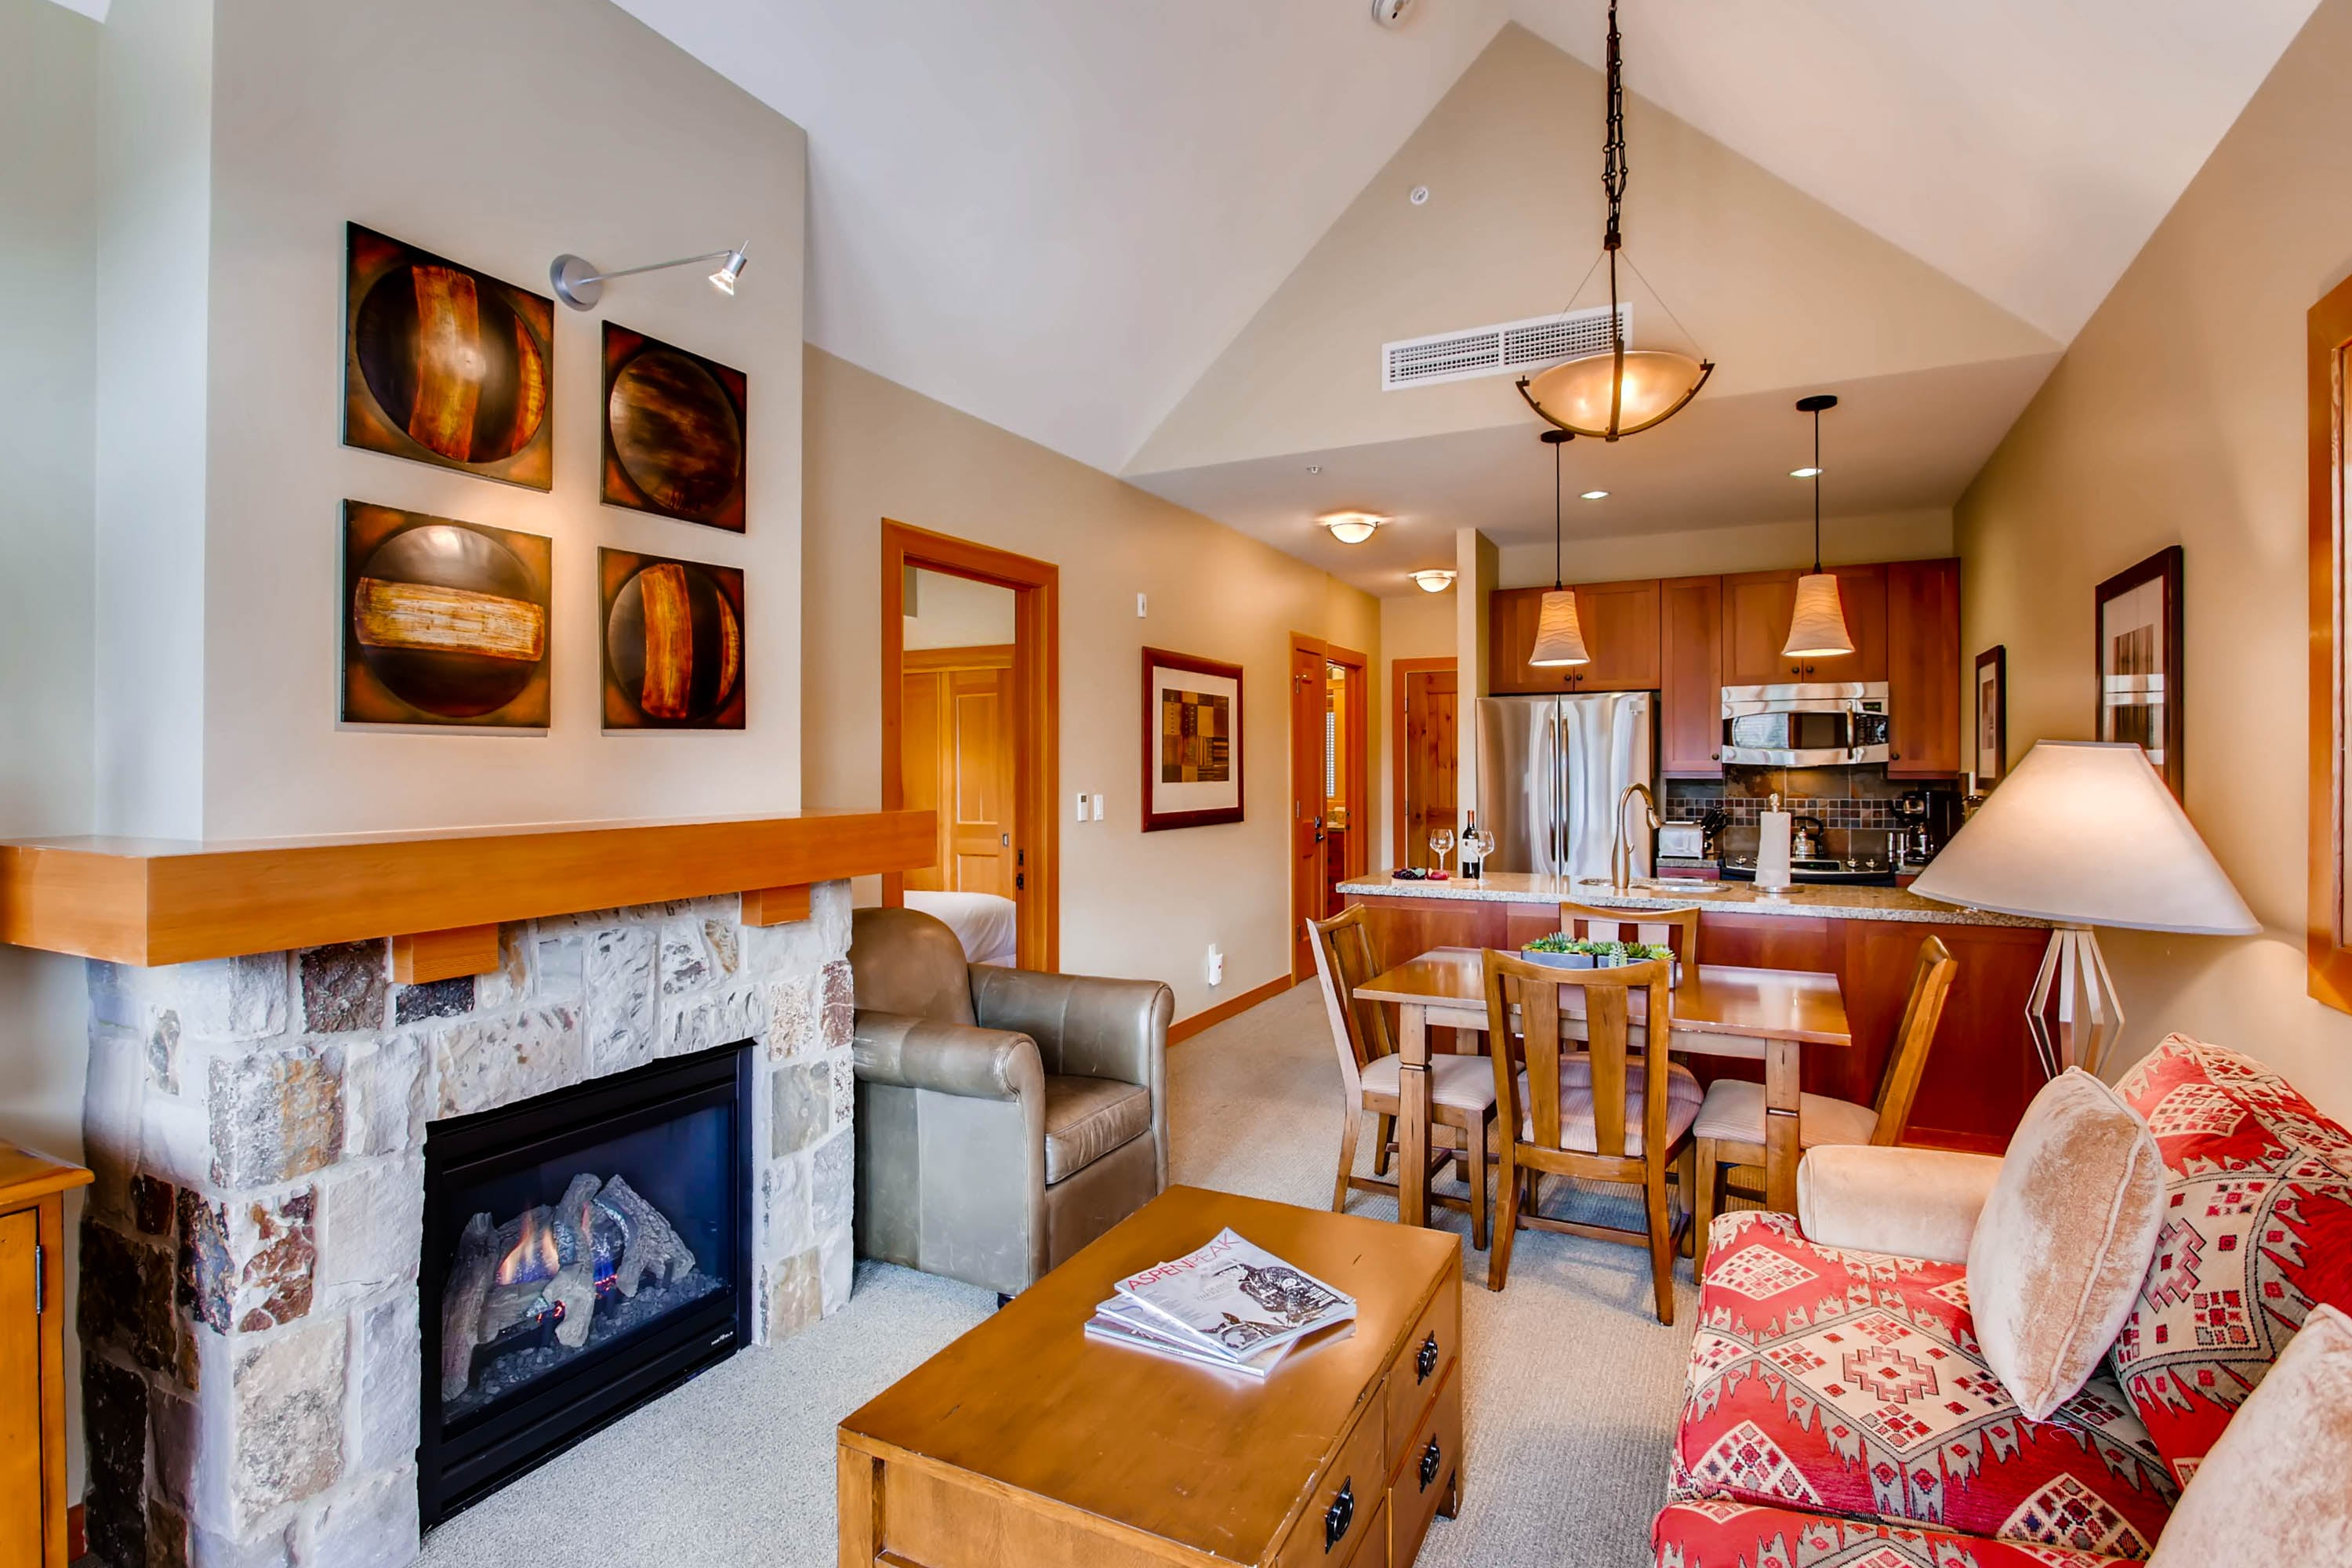 Property Image 2 - Comfortable mountain apartment with vaulted ceilings in Capitol Peak Lodge